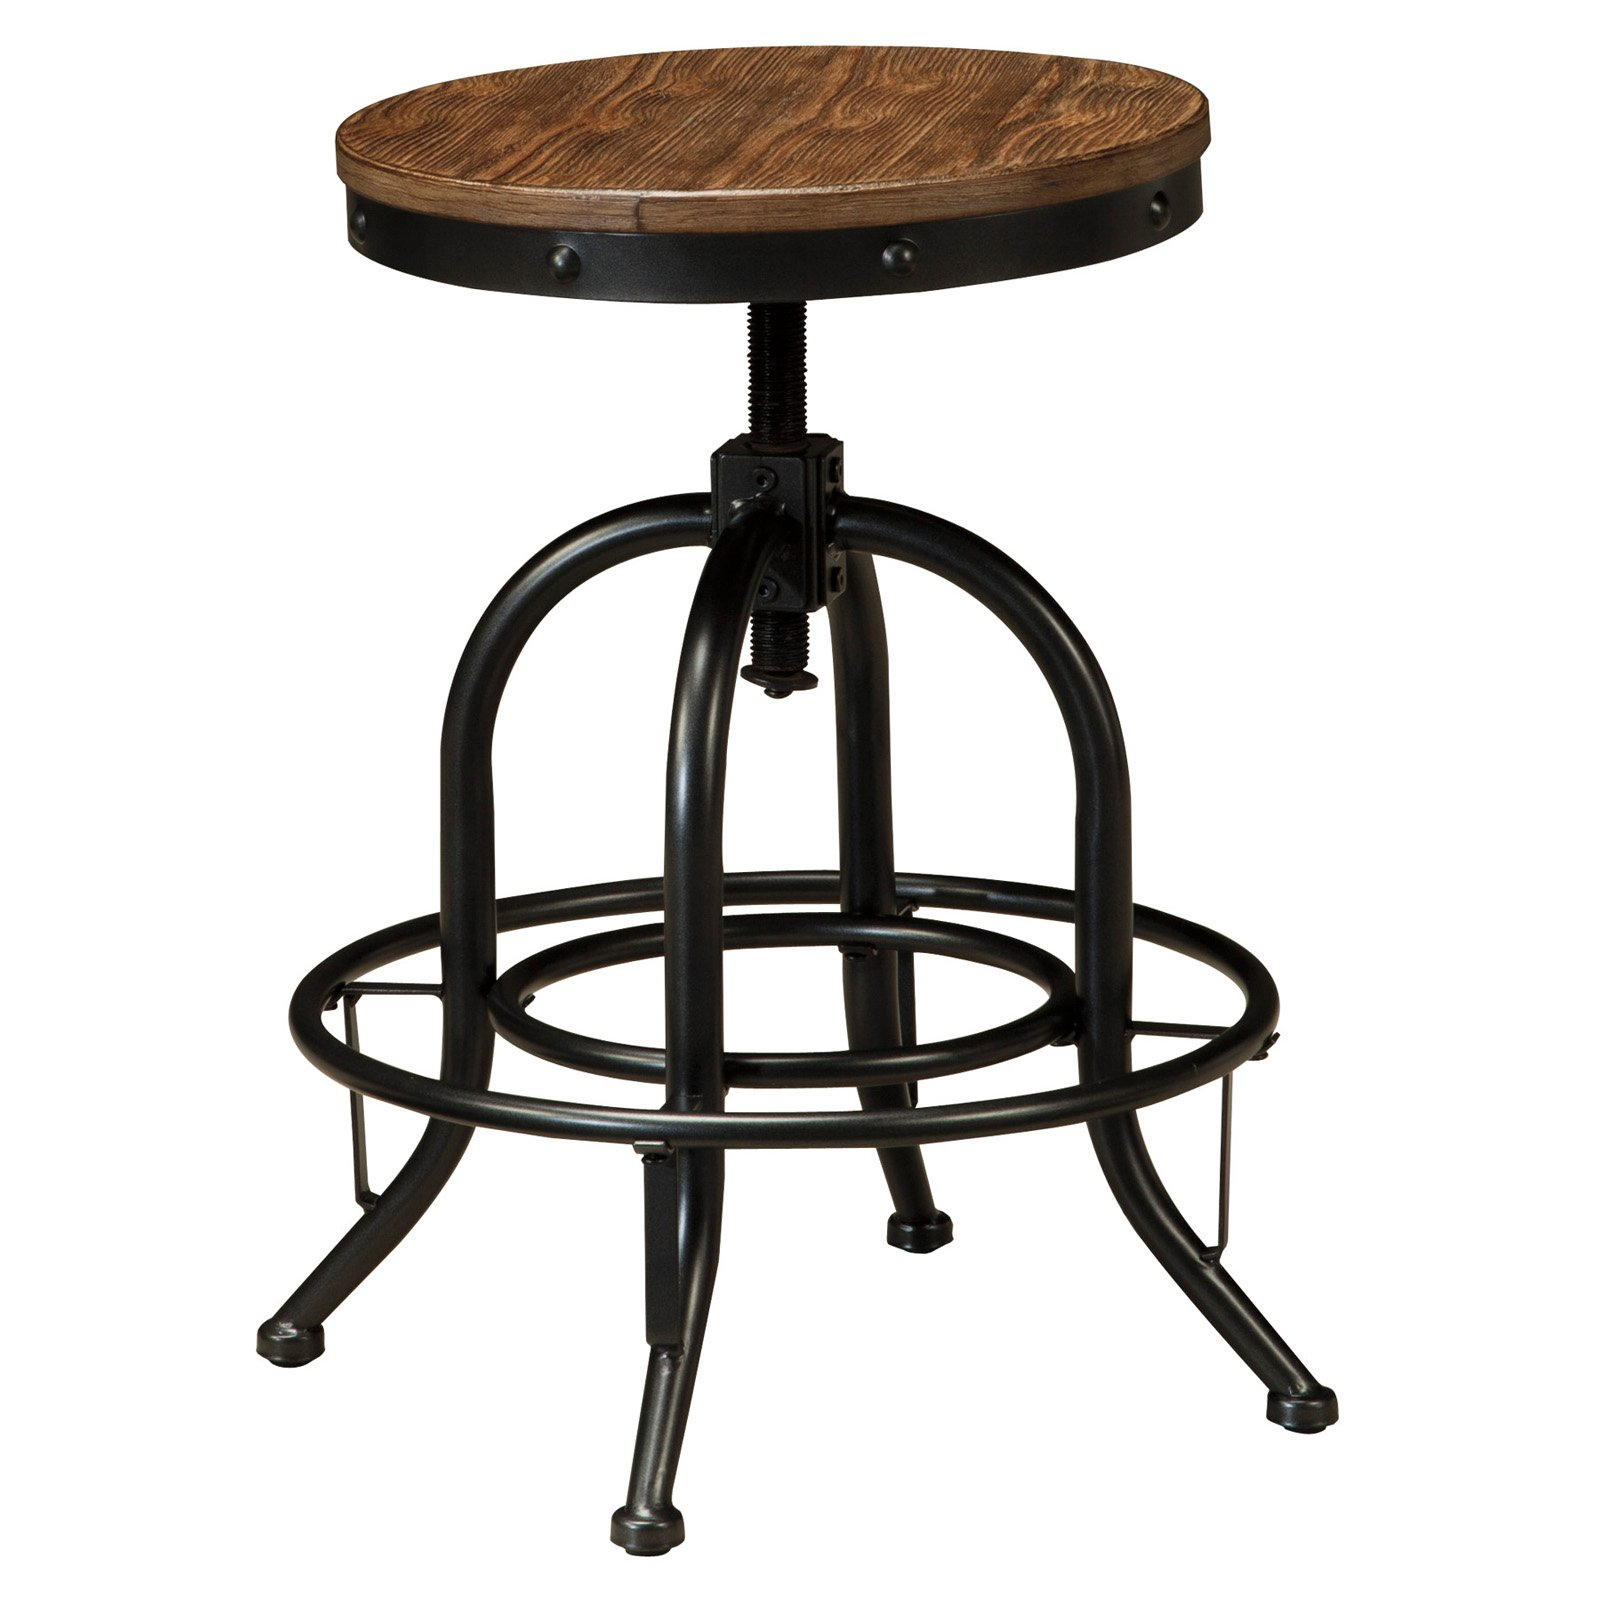 Signature Design by Ashley Pinnadel Wood Backless Counter Height Stools - Set of 2 - Walmart.com